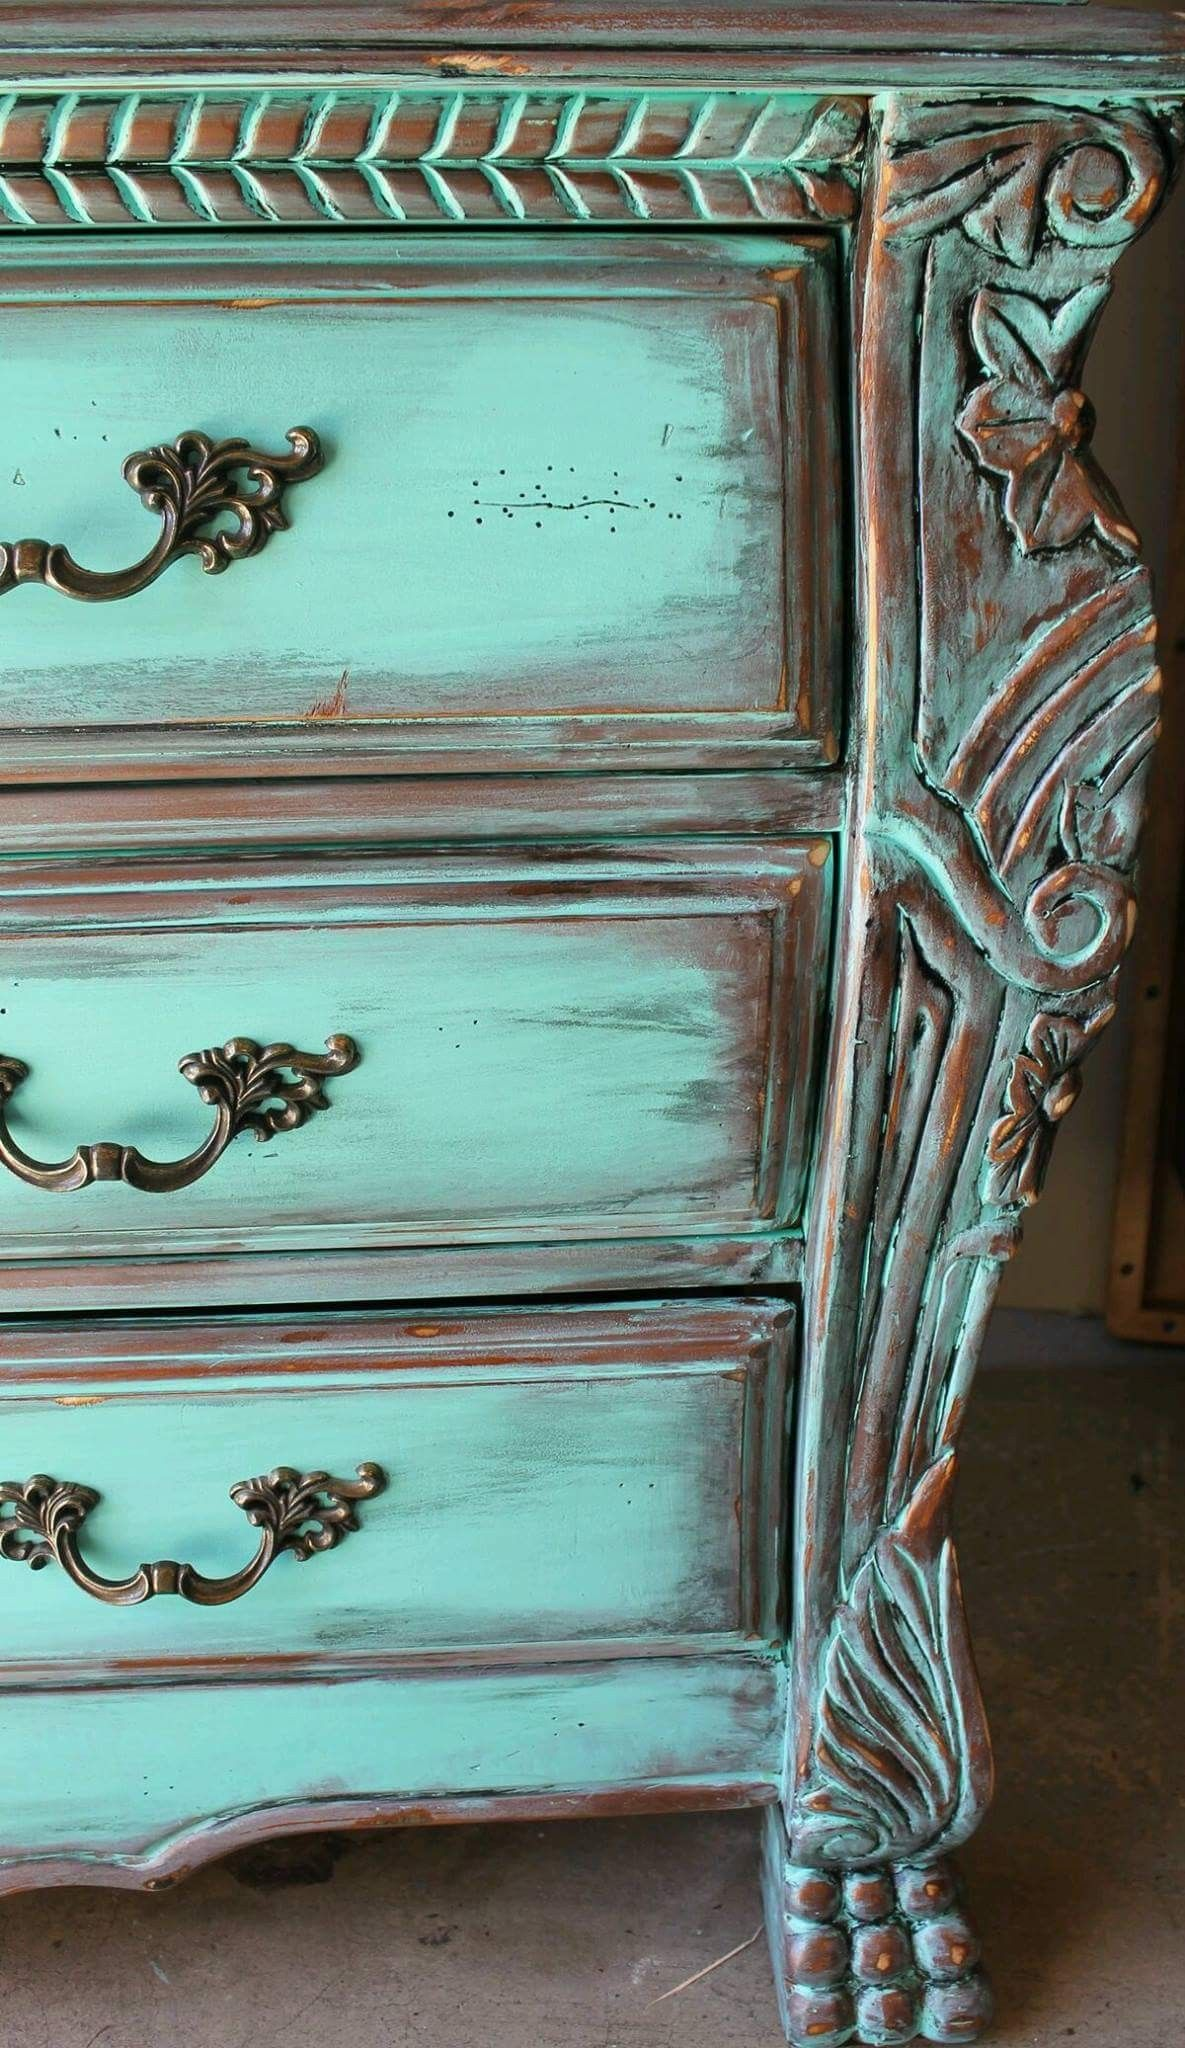 Uncategorized Turquoise Shabby Chic Furniture pin by martina on komoda pinterest chalk paint aqua turquoise distressed french armoire dresser with aged copperebony patina the best of shabby chic in home decoration interior de